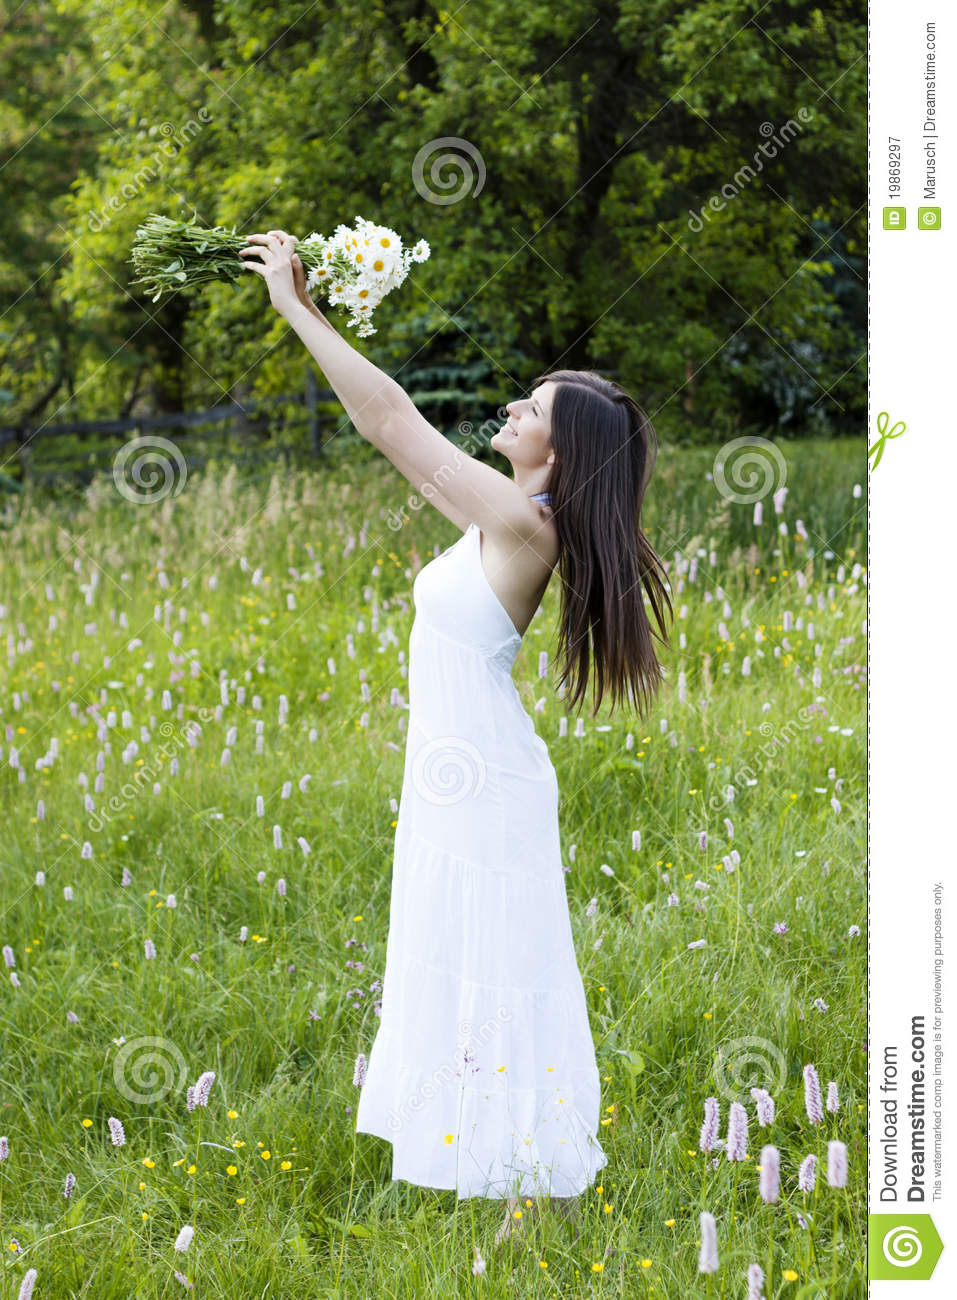 Innocent Girl Wallpaper Beautiful Girl Holding Flowers In A Meadow Stock Image